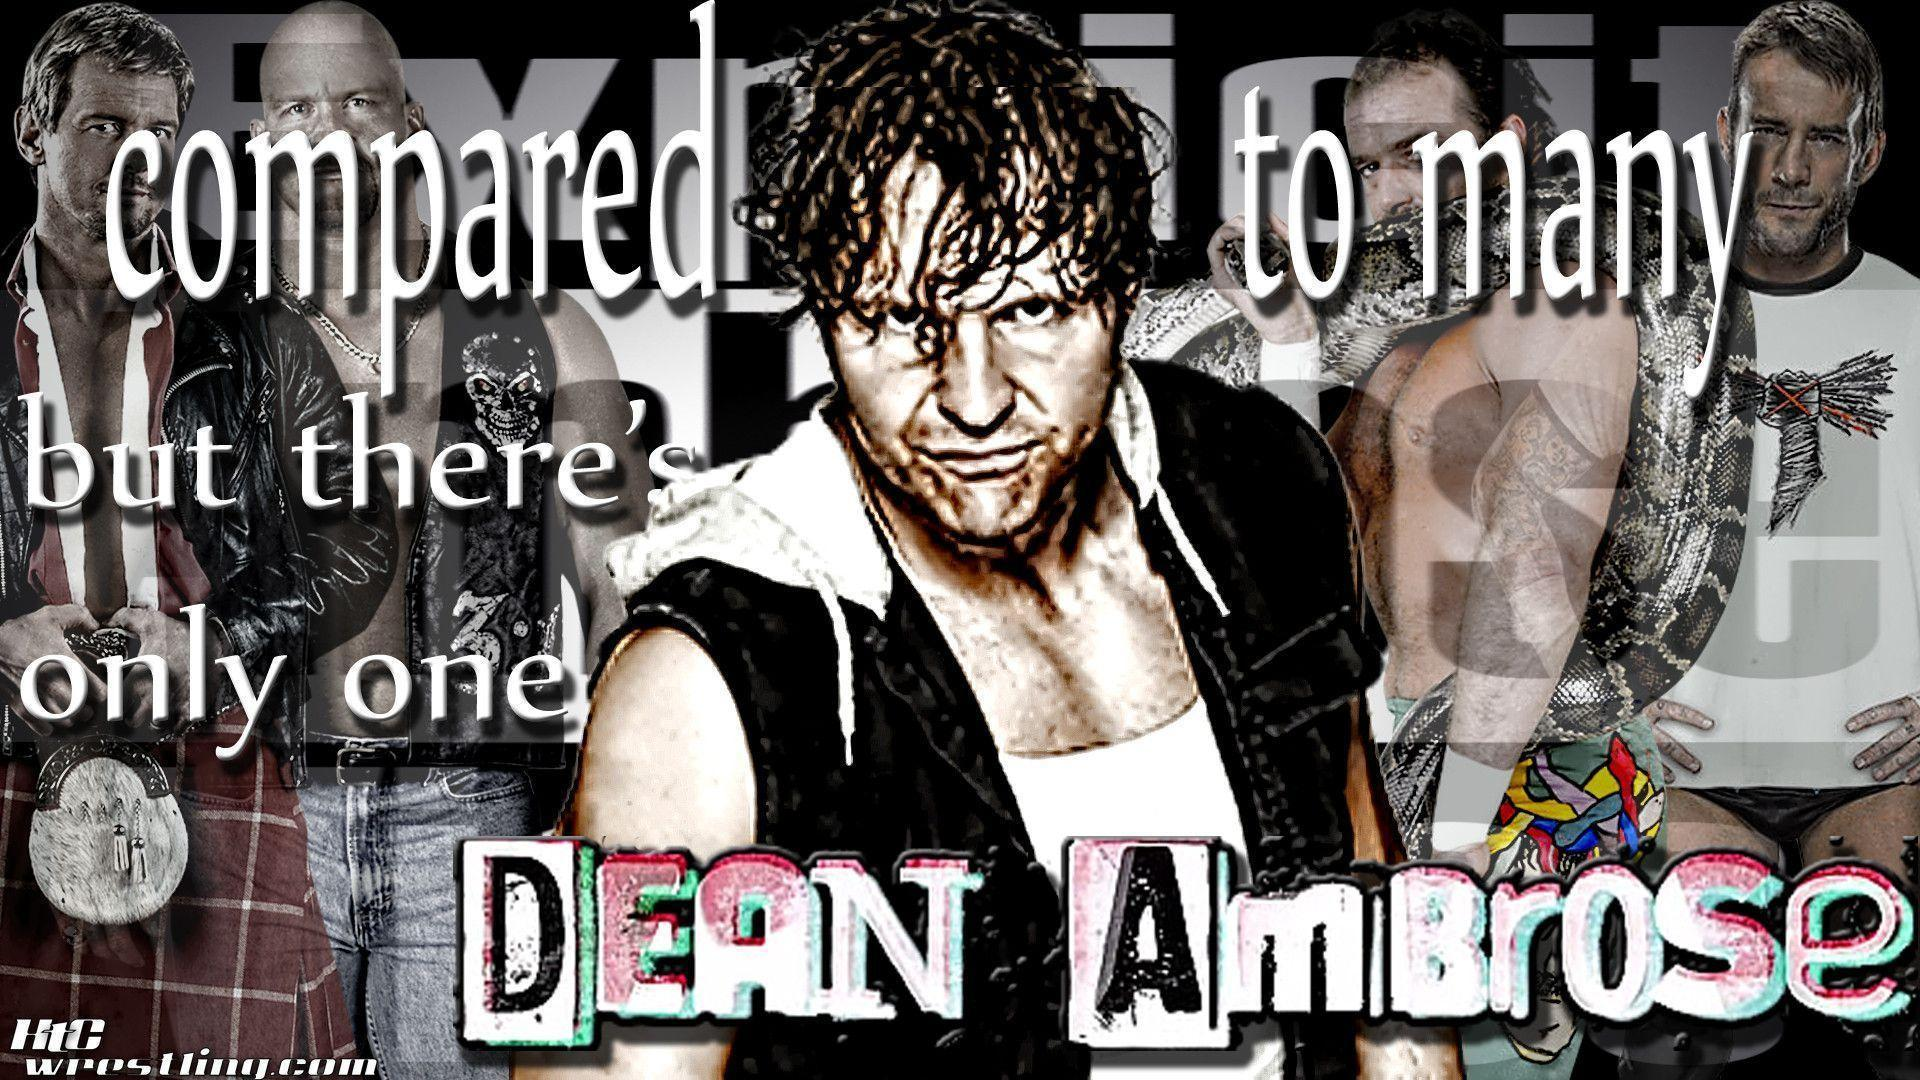 Wallpapers of the Week: One & Only Dean Ambrose Wallpapers